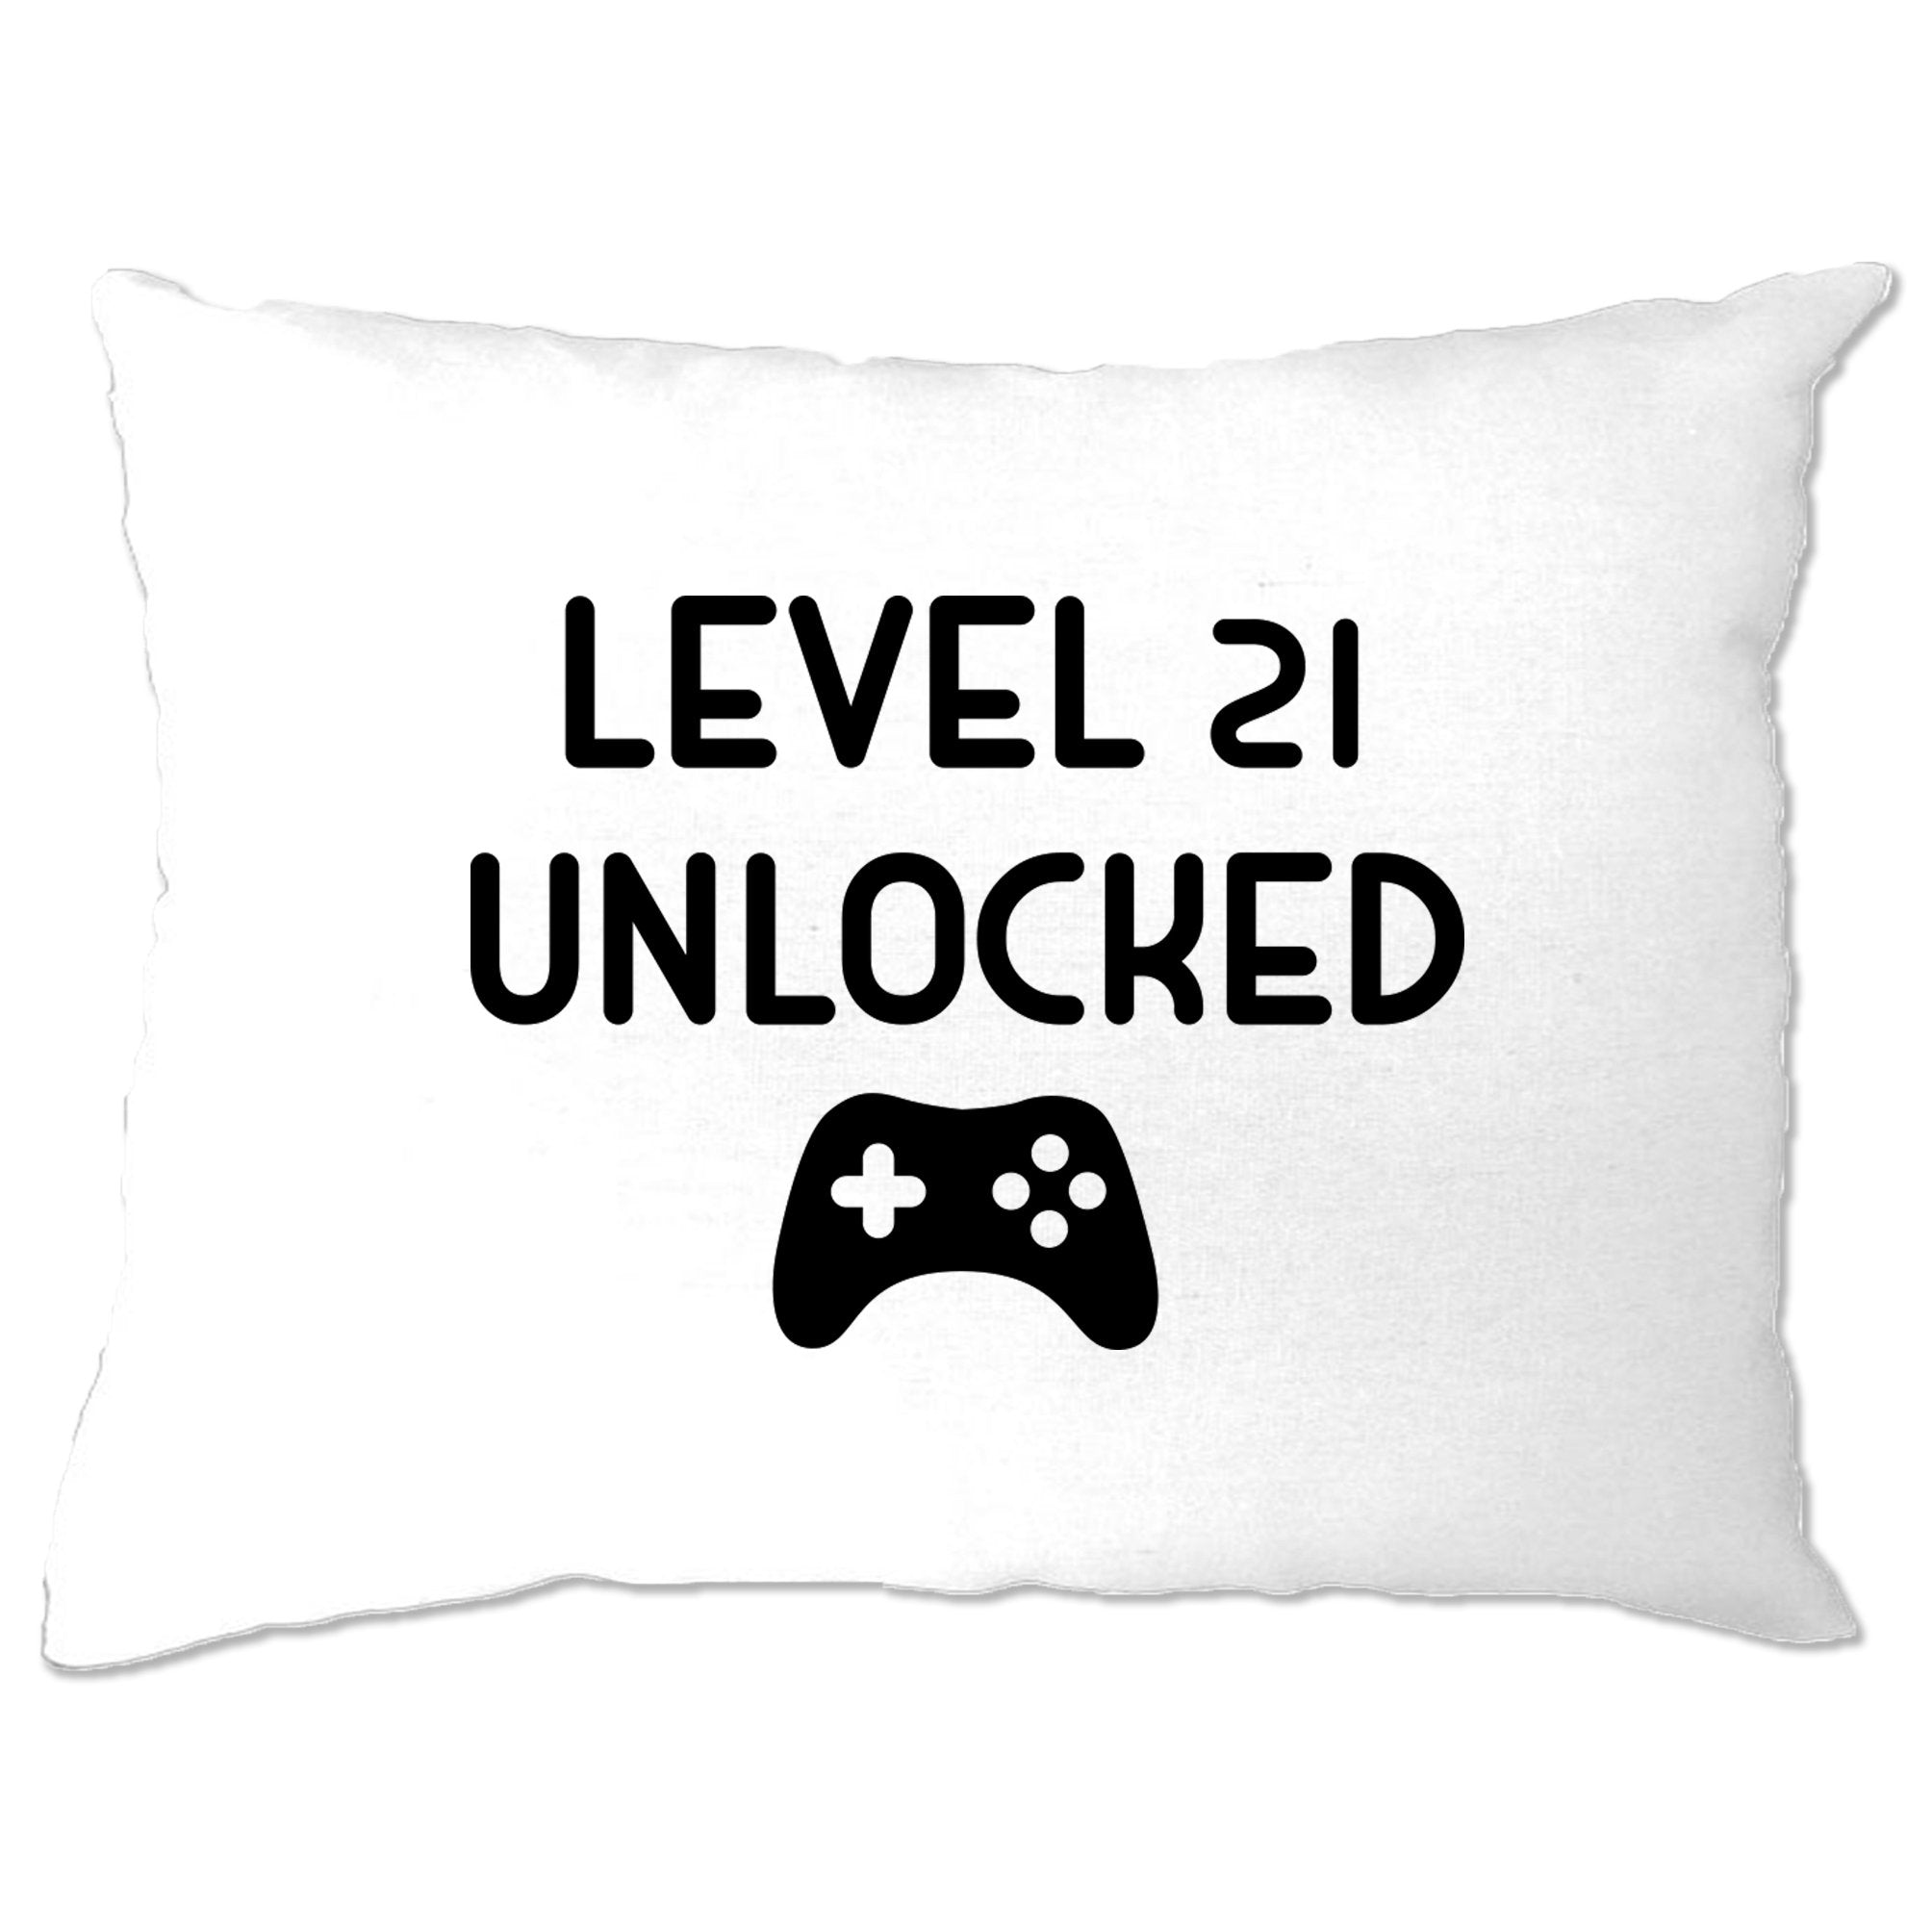 Gamers 21st Birthday Pillow Case Level 21 Unlocked Slogan